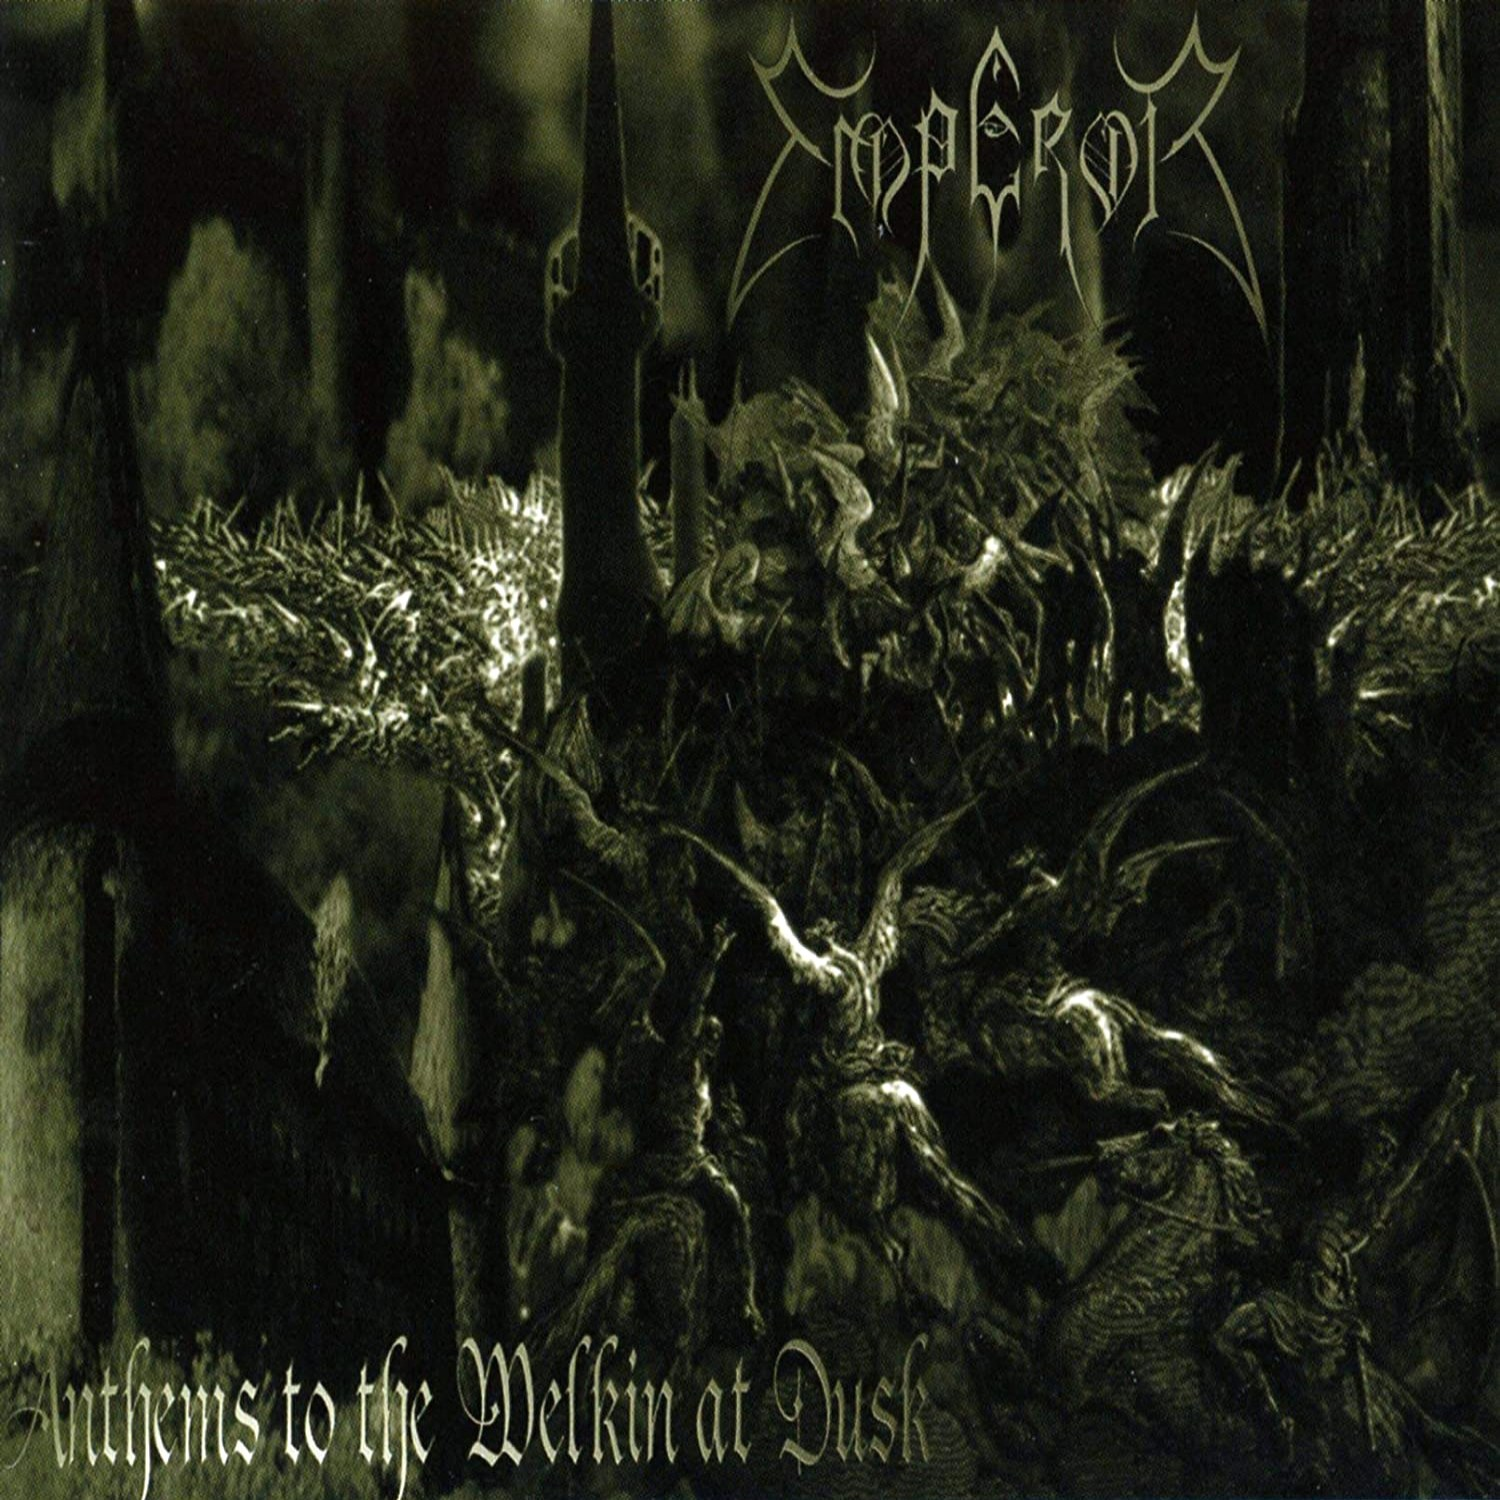 Review for Emperor - Anthems to the Welkin at Dusk